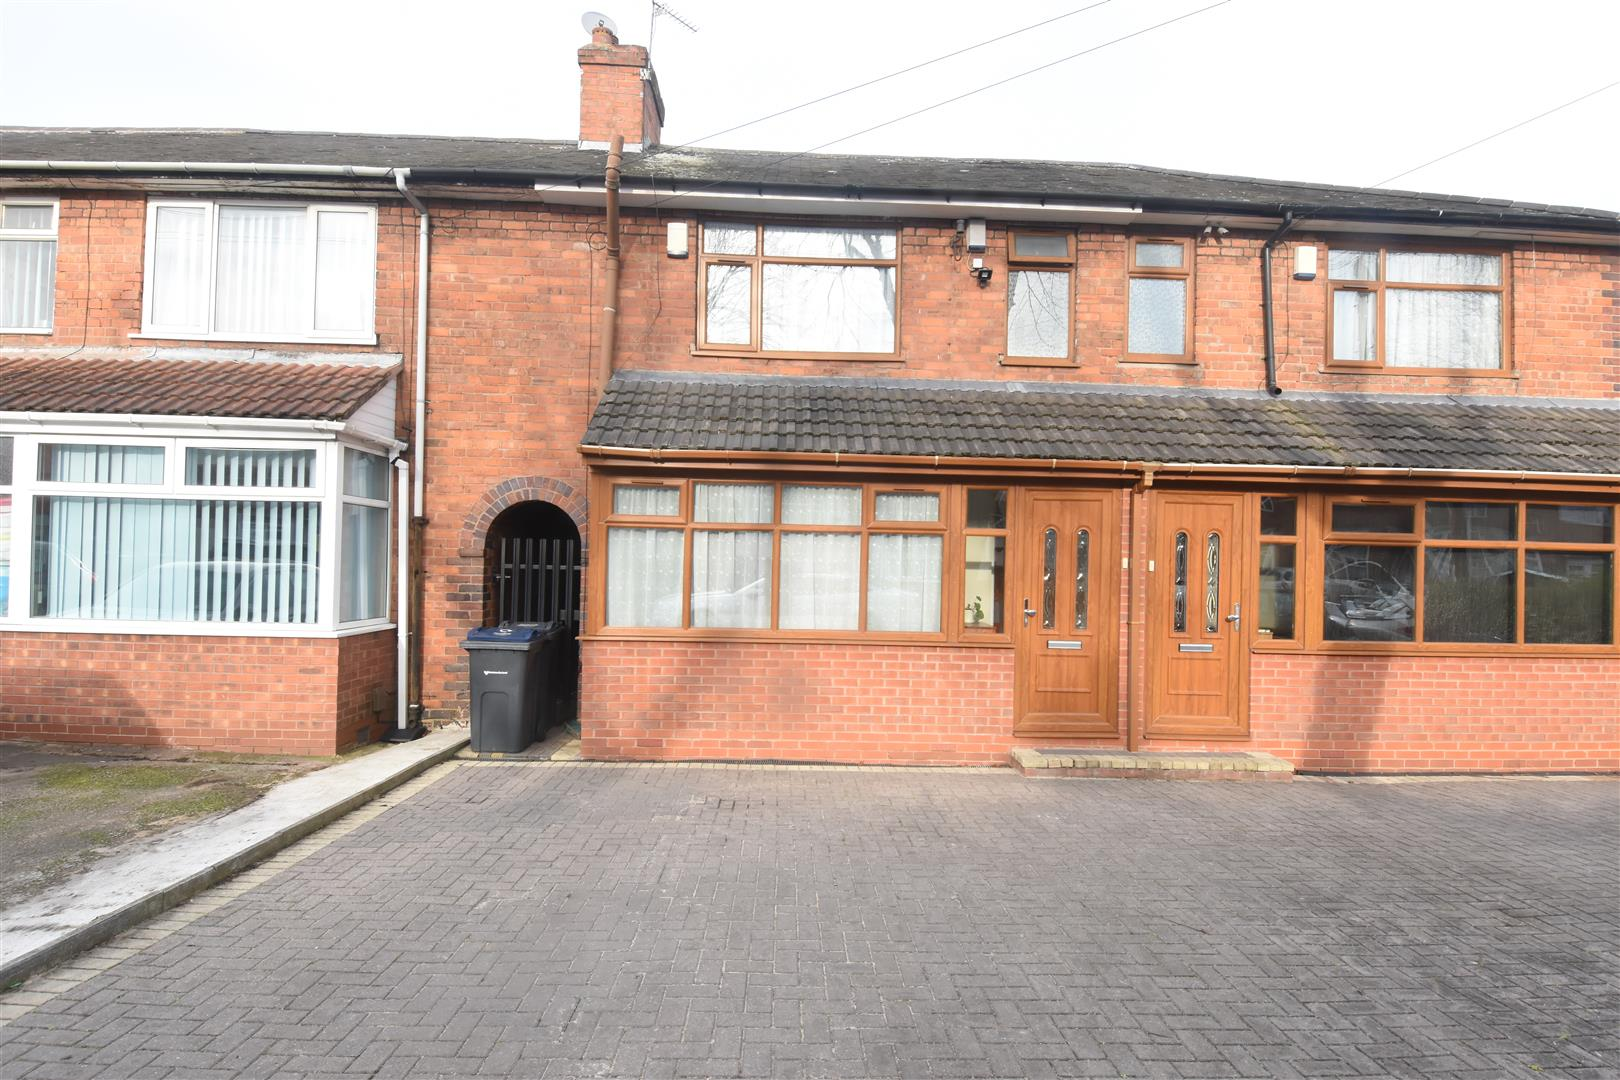 3 bed house for sale in Shaw Hill Road, Birmingham, B8